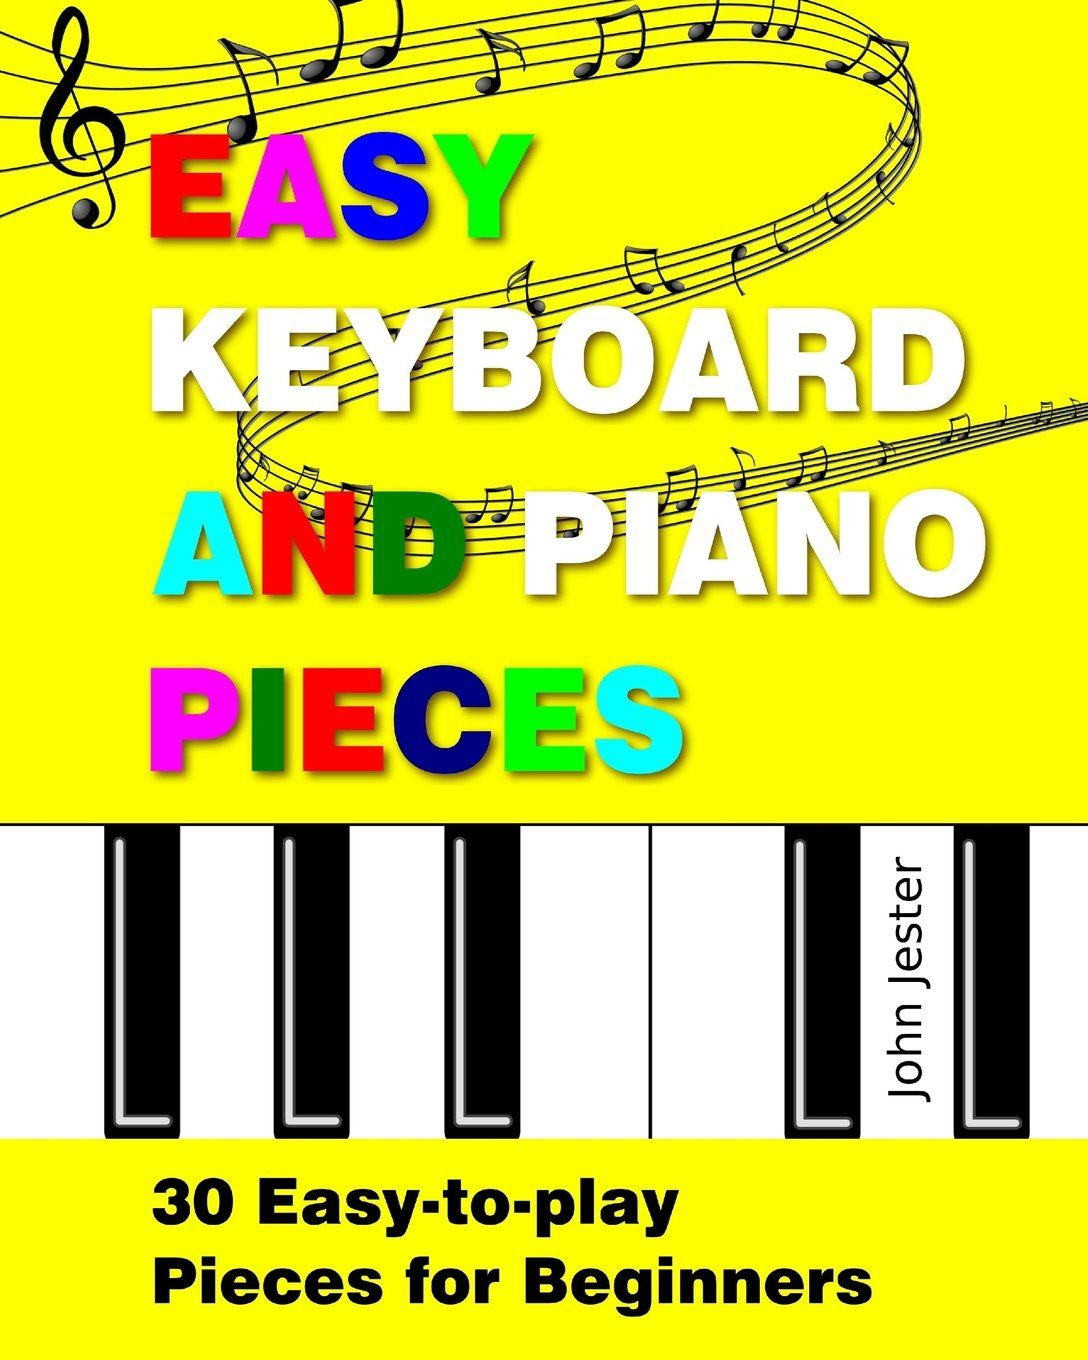 Easy Keyboard and Piano Pieces 30 Easytoplay Pieces for